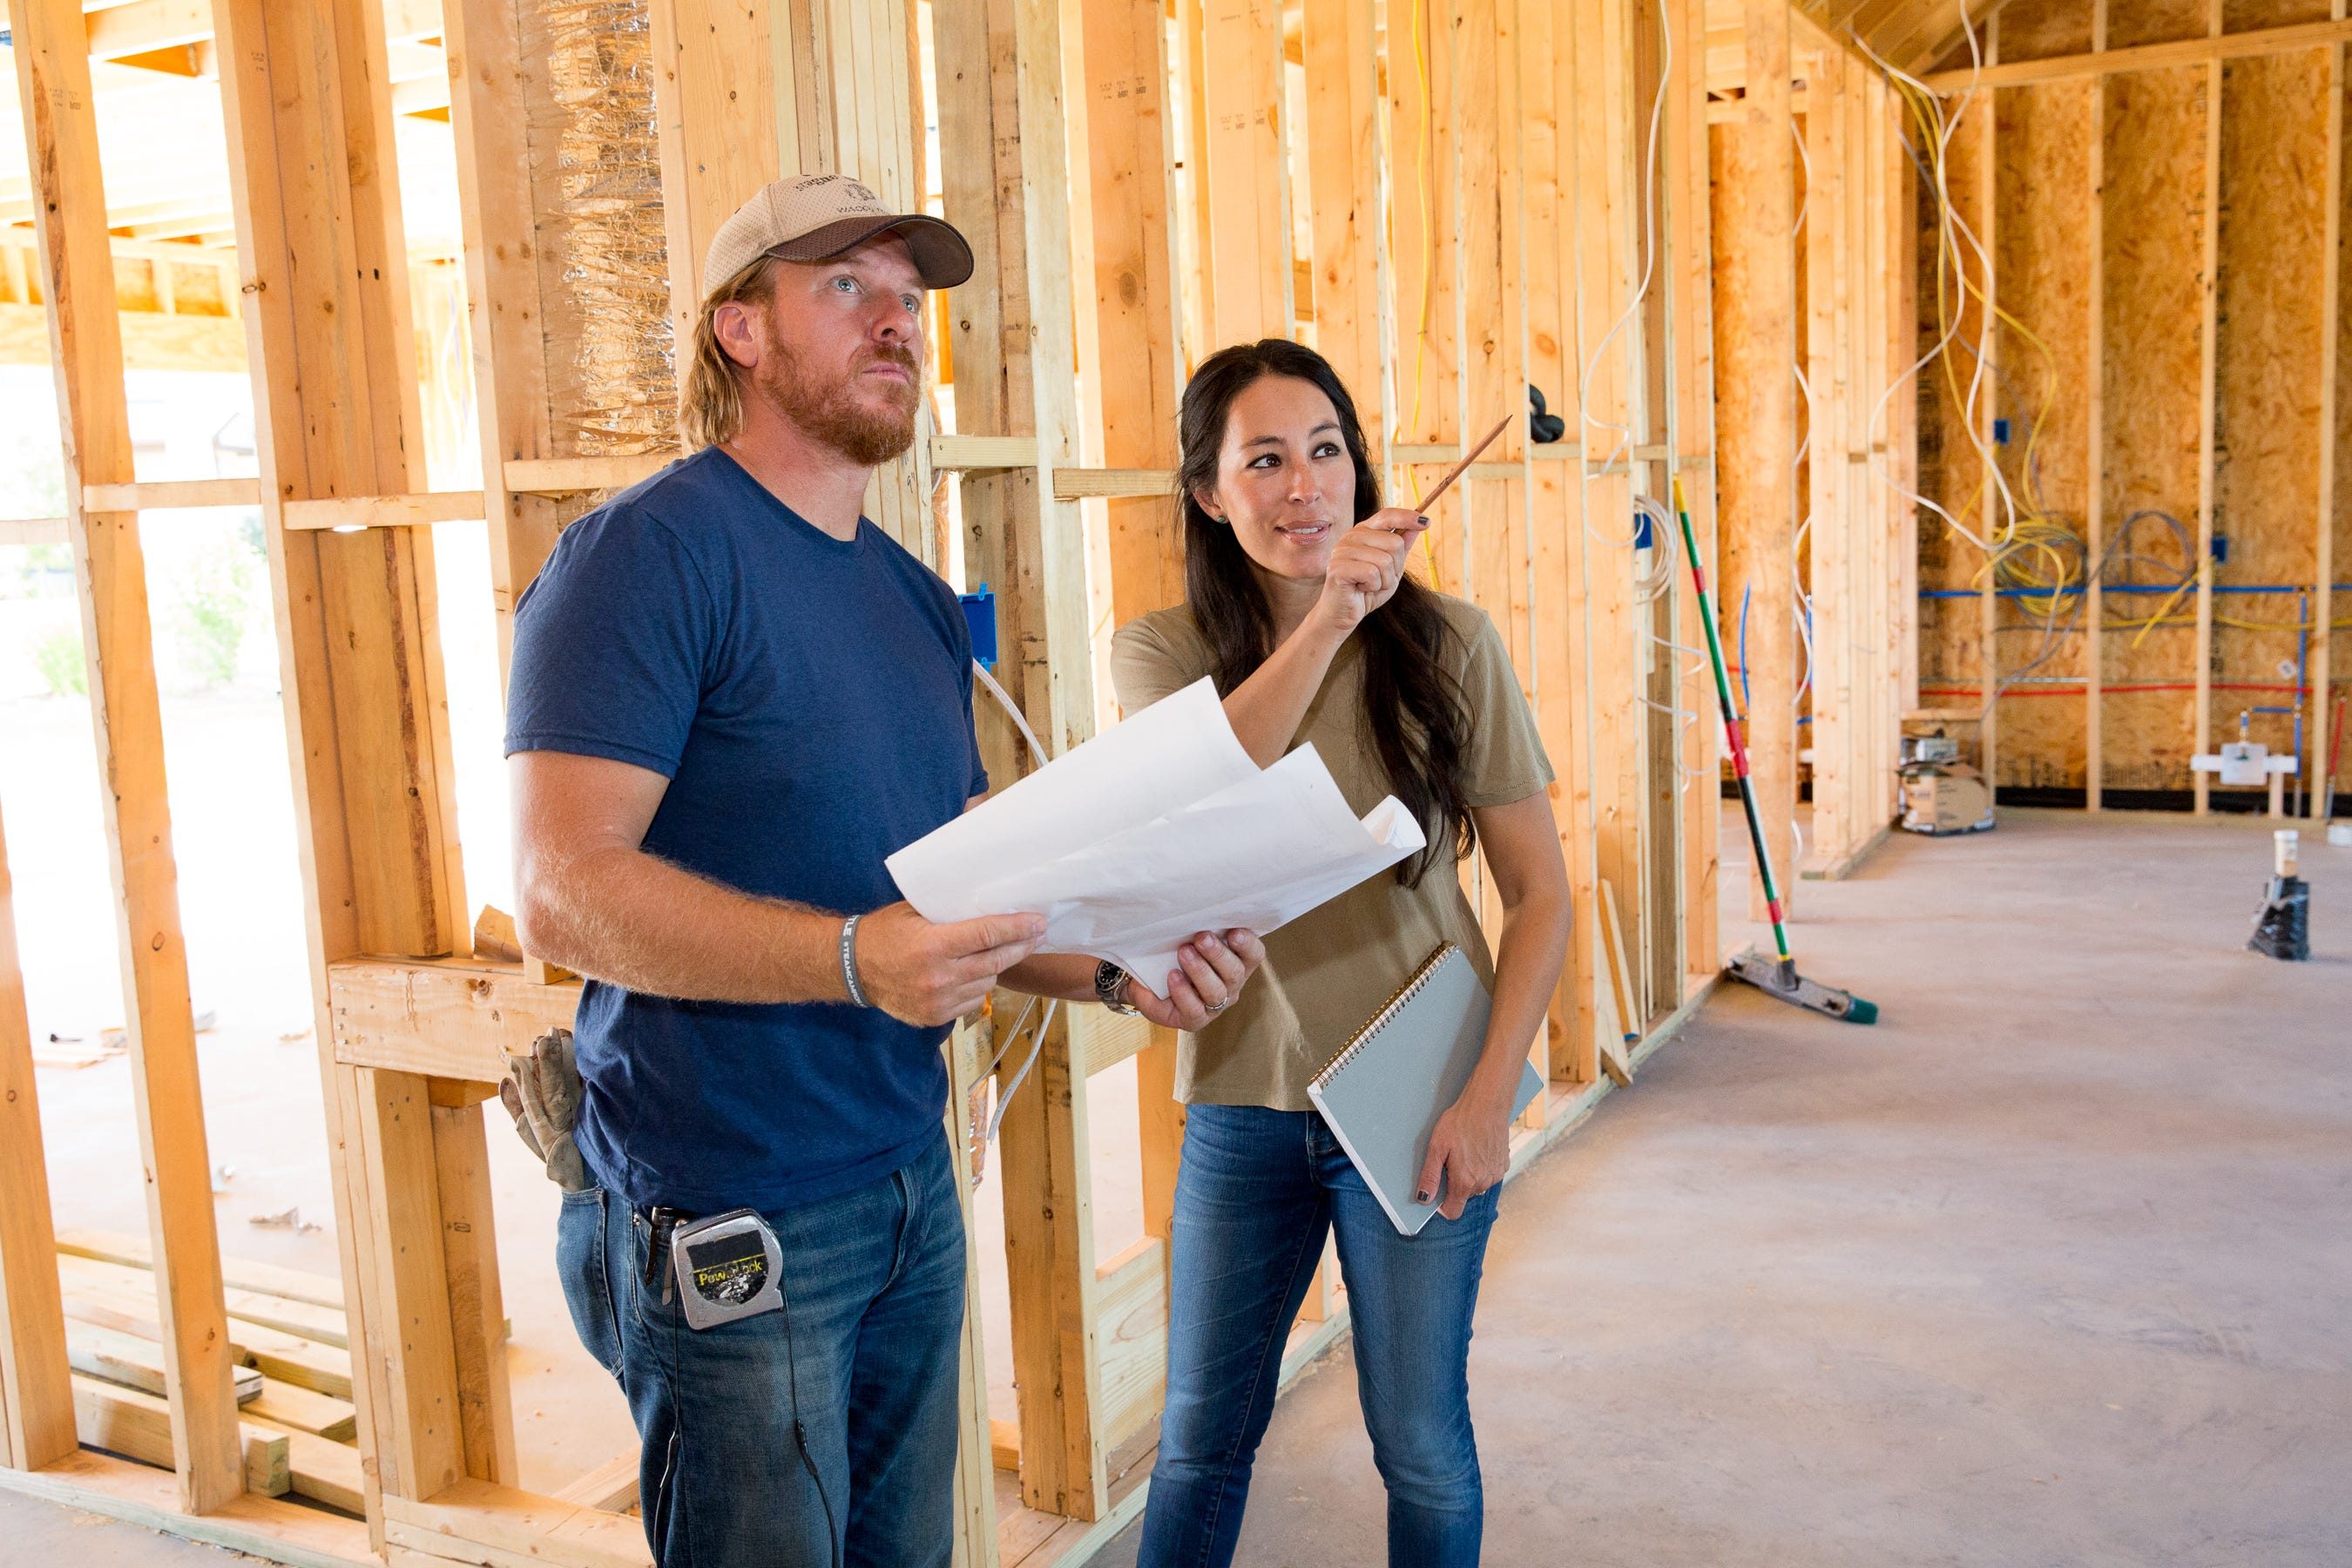 Chip And Joanna Say Security Concerns Arent To Blame For Fixer Upper Ending Chip And Joanna Say Security Concerns Arent To Blame For Fixer Upper Ending new pictures